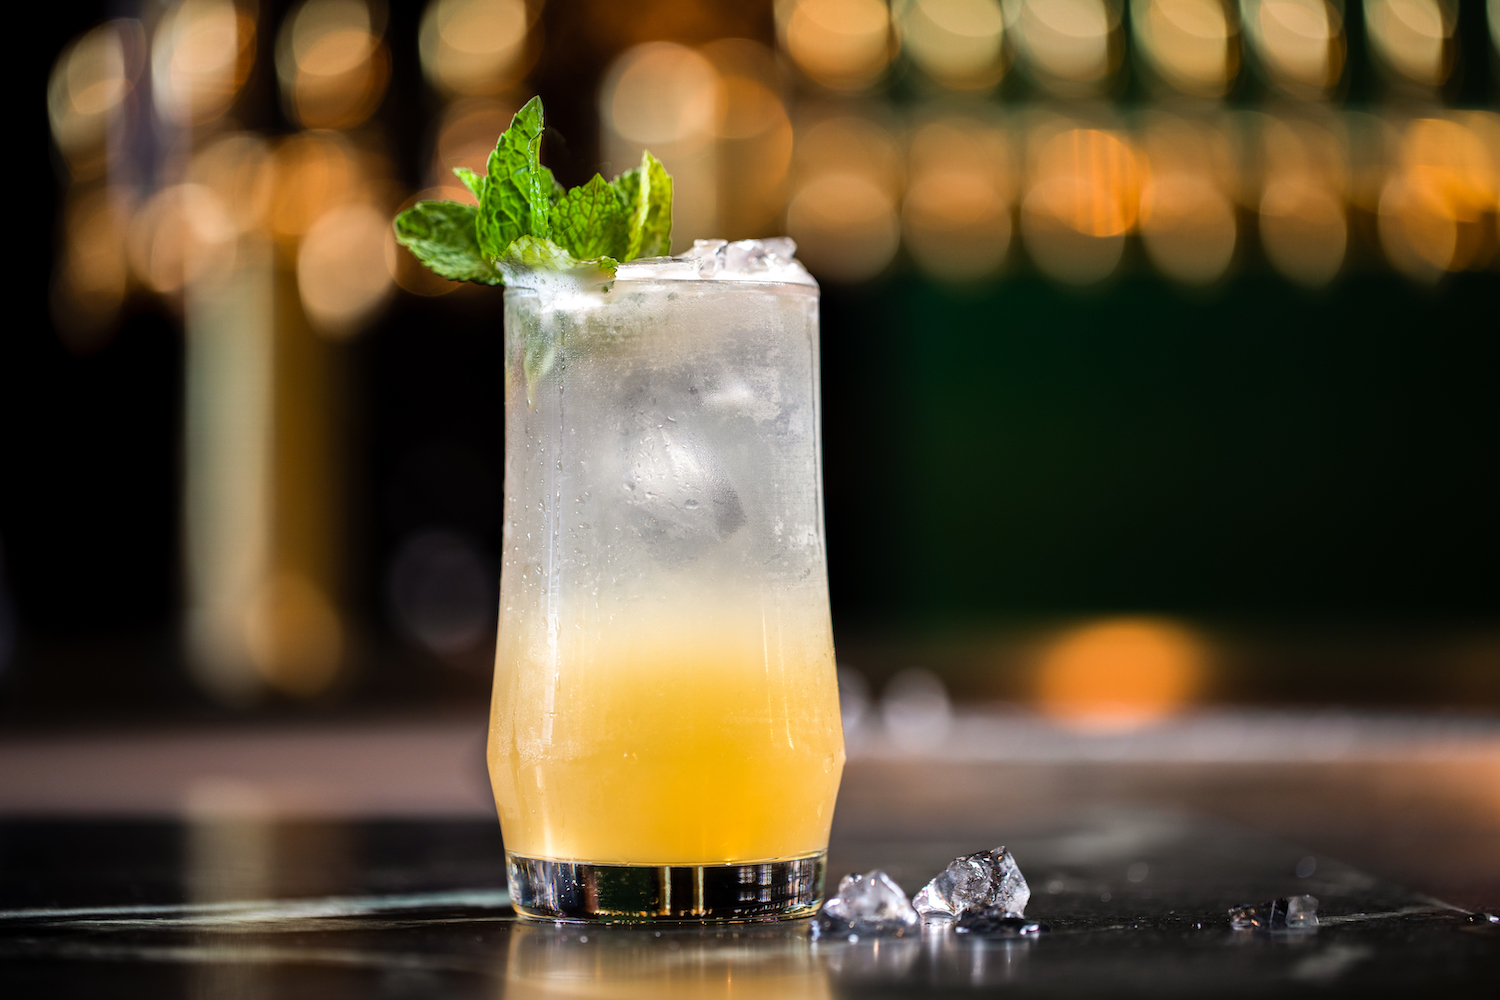 Many of the cocktails at Sobre Mesa are rum-based, like the Mojito.